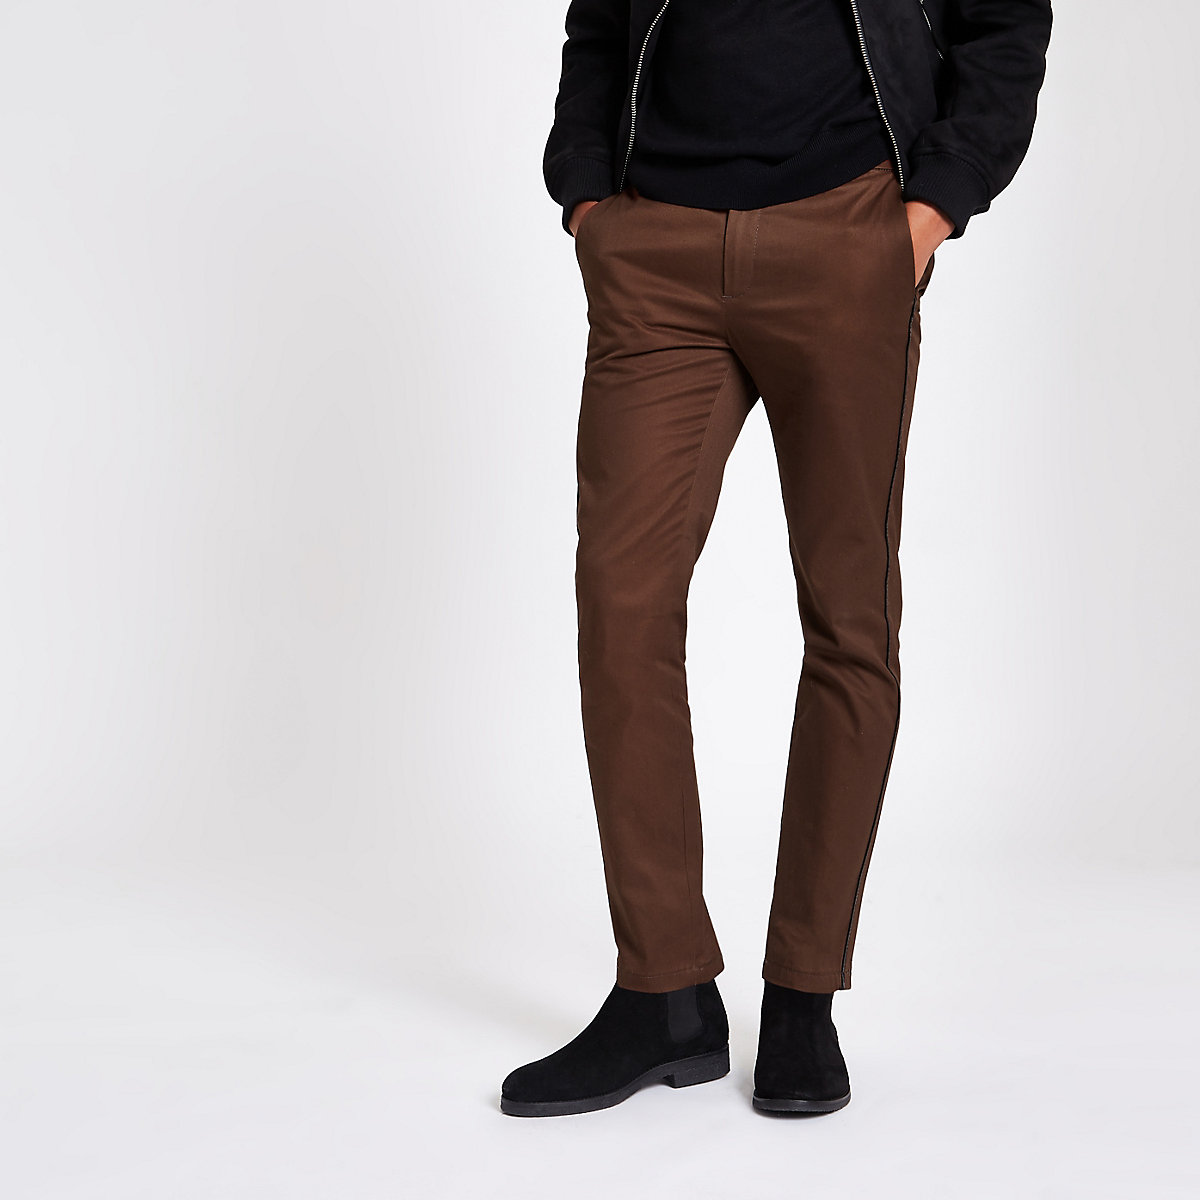 Brown taped side skinny fit pants